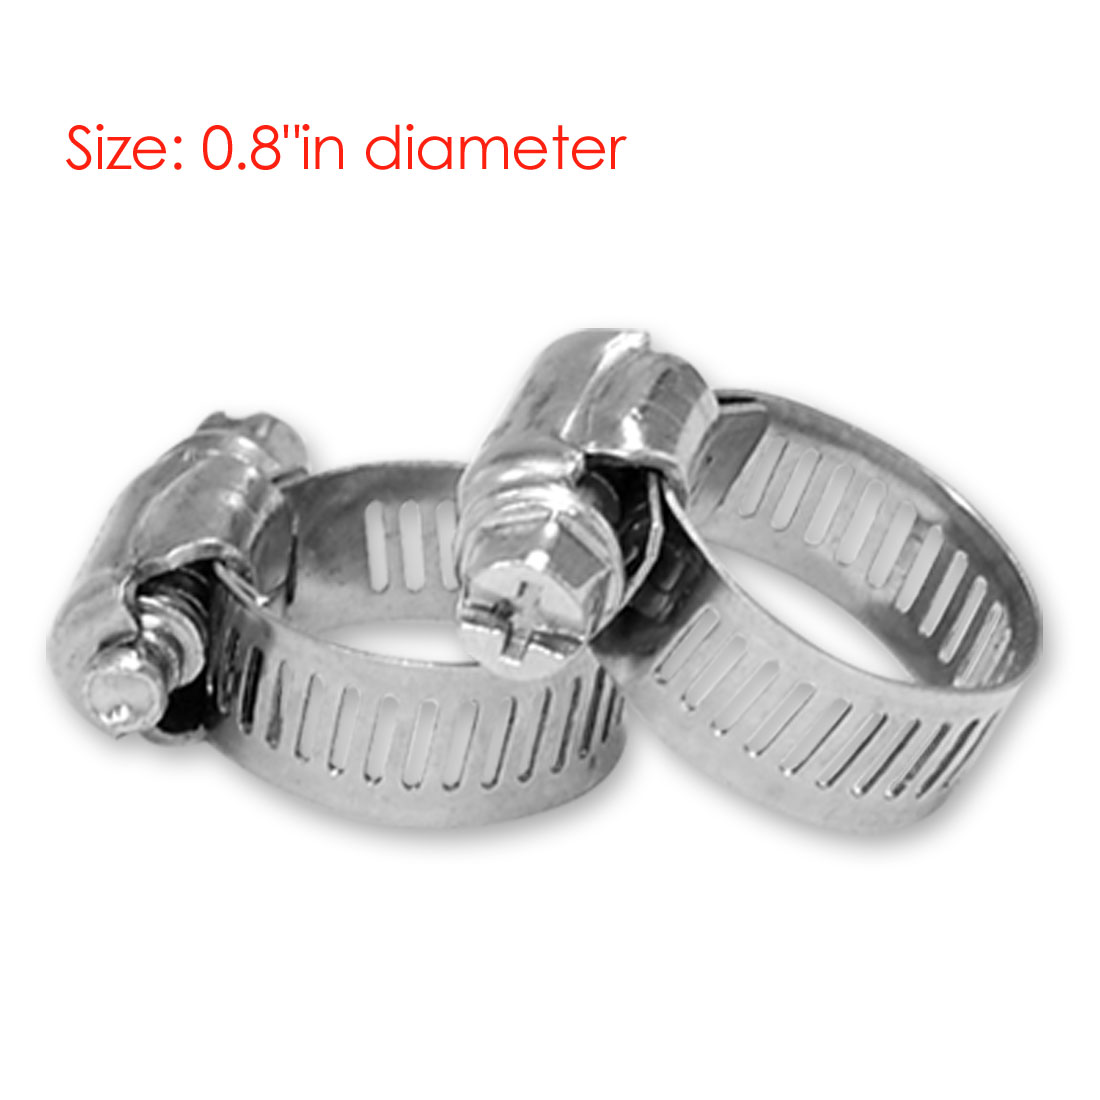 2 x 0.75 inch Gas Water Pipe Connect Hose Alloy Clamps